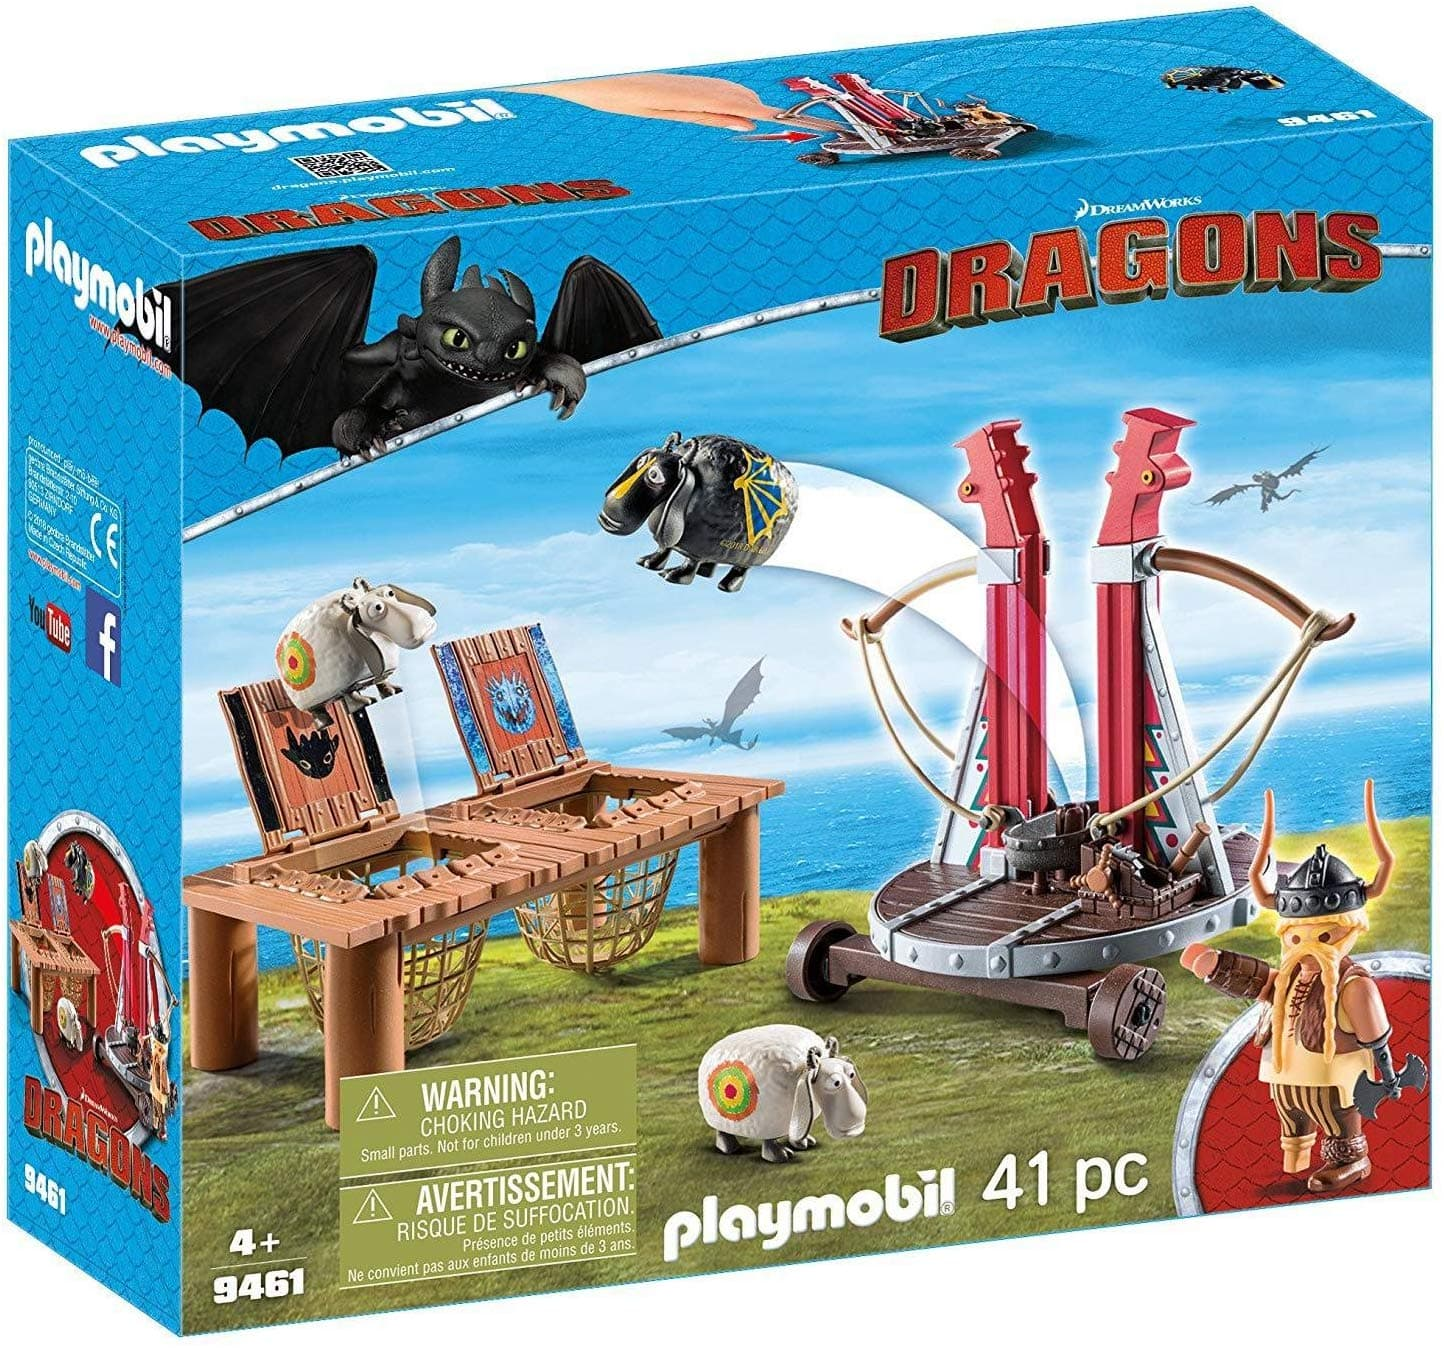 Playmobil How to Train Your Dragon Gobber The Belch with Sheep Sling - $15.75 at Amazon